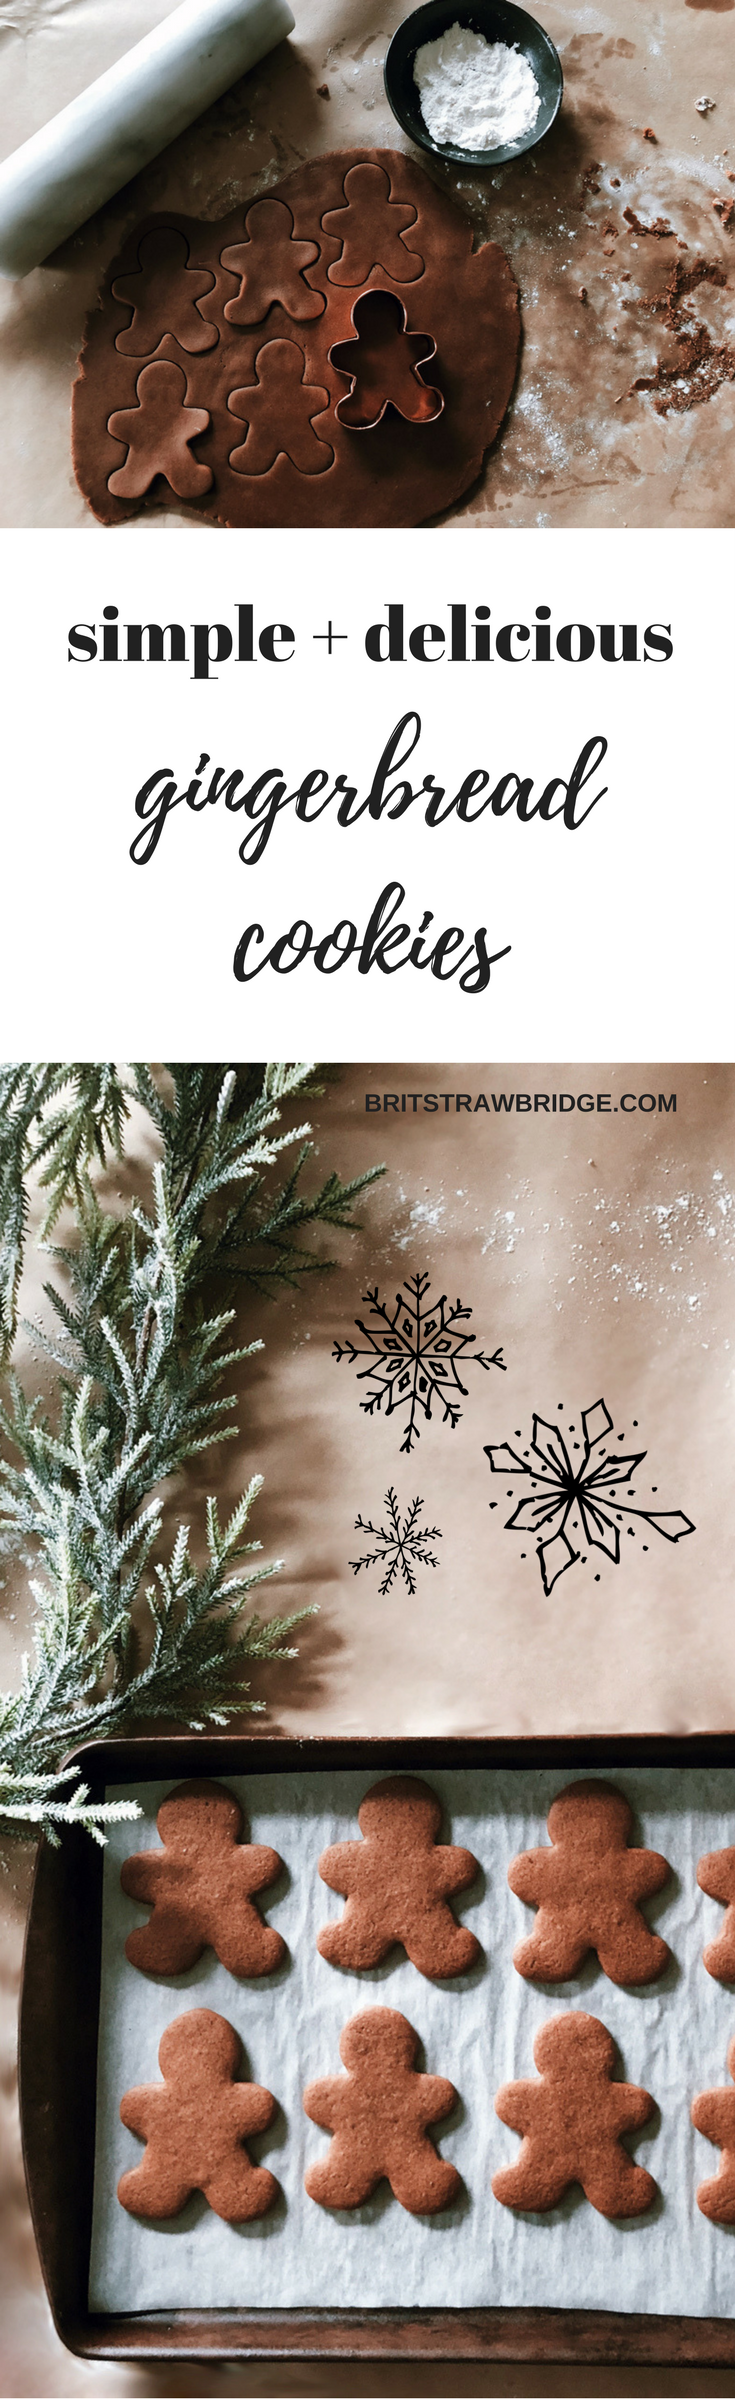 Simple Gingerbread Cookie Recipe | brit strawbridge